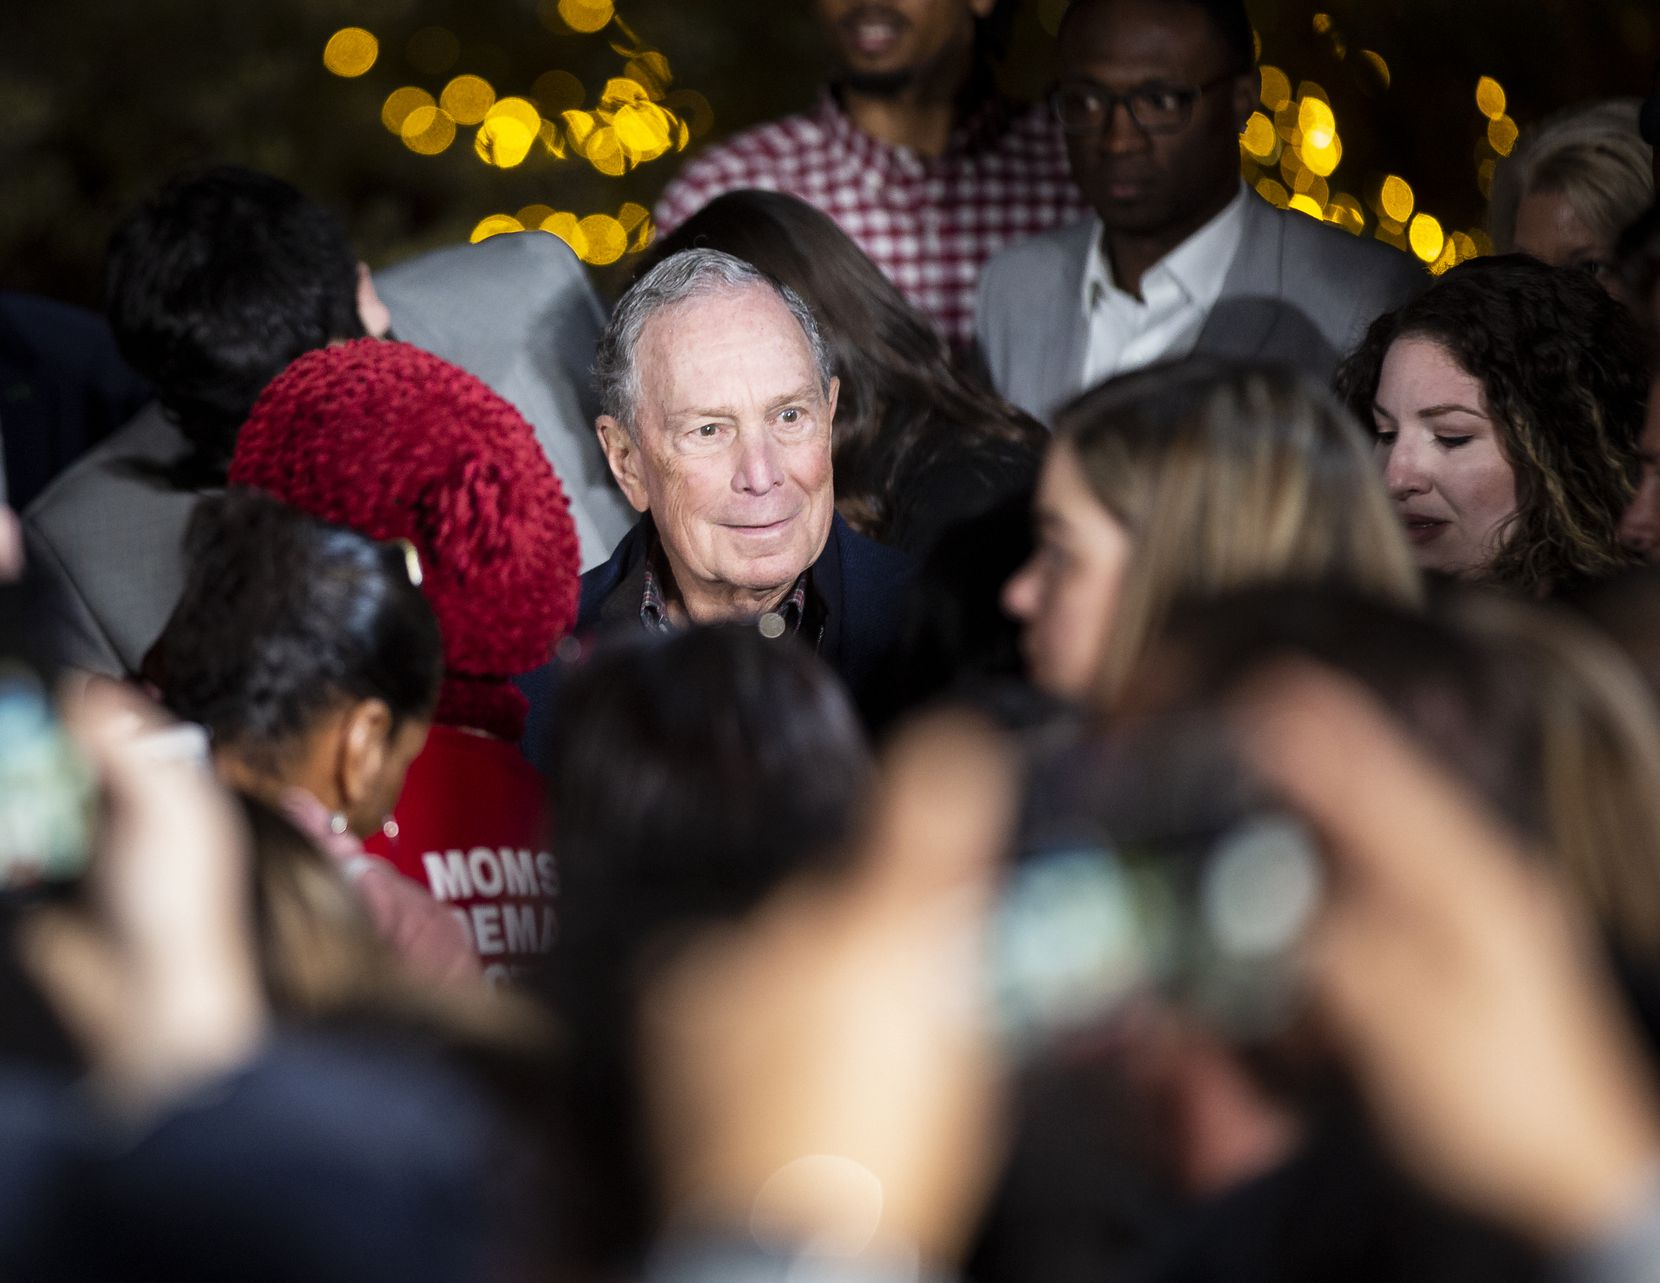 Presidential candidate and former New York Mayor Mike Bloomberg made a campaign stop at the Happiest Hour in Dallas on Jan. 11. (Juan Figueroa/The Dallas Morning News)